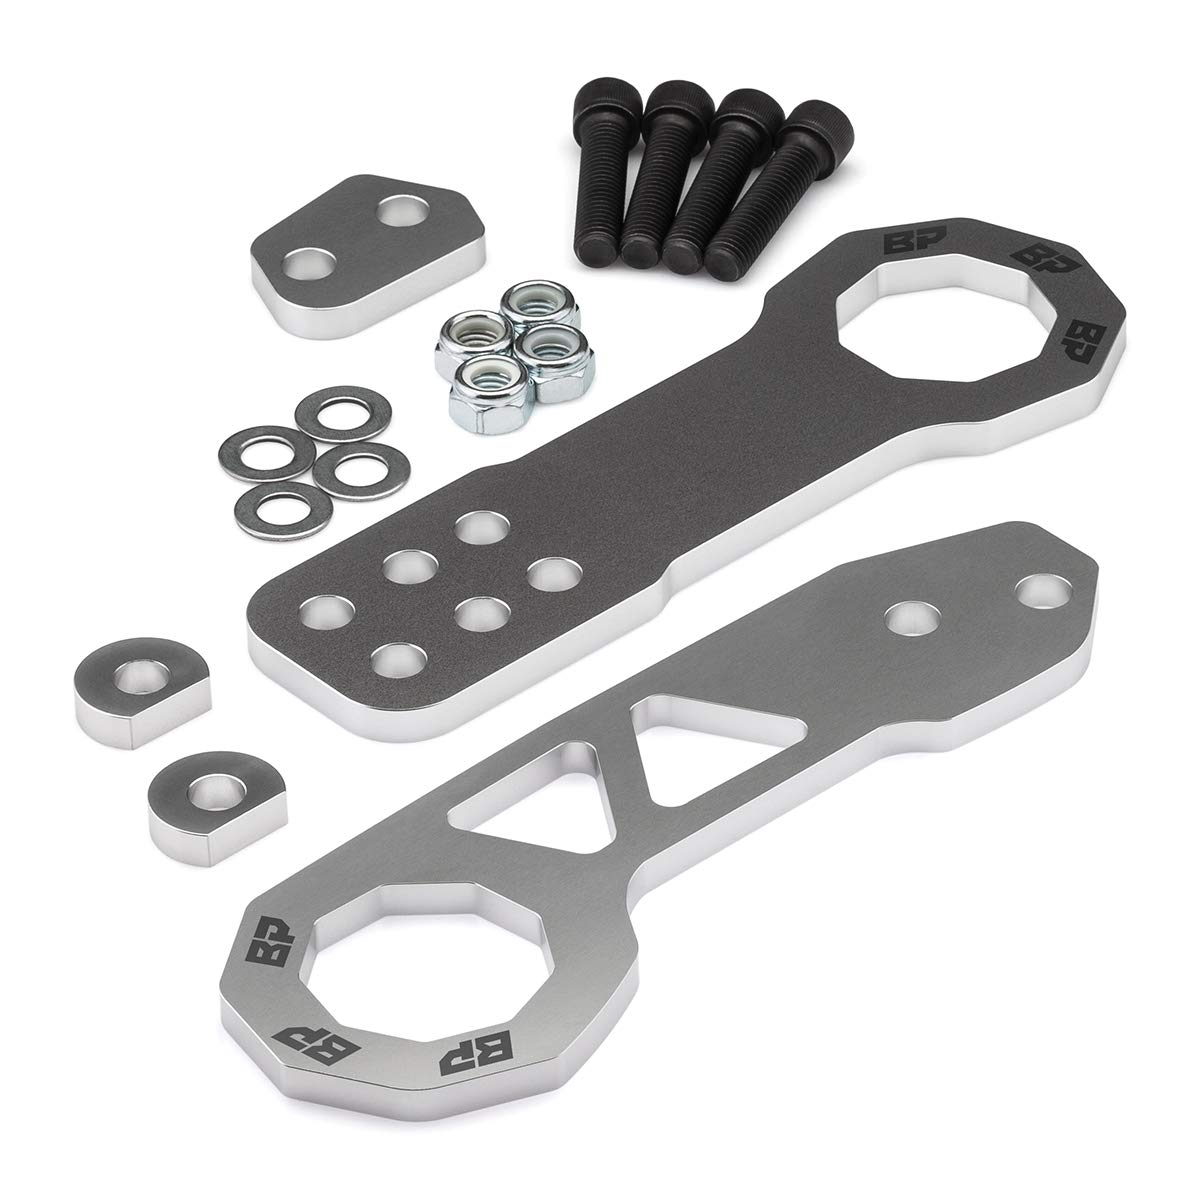 BlackPath - Fits Toyota + Nissan Front and Rear JDM Racing Style Tow Hook Set (Silver) T6 Billet by Black Path